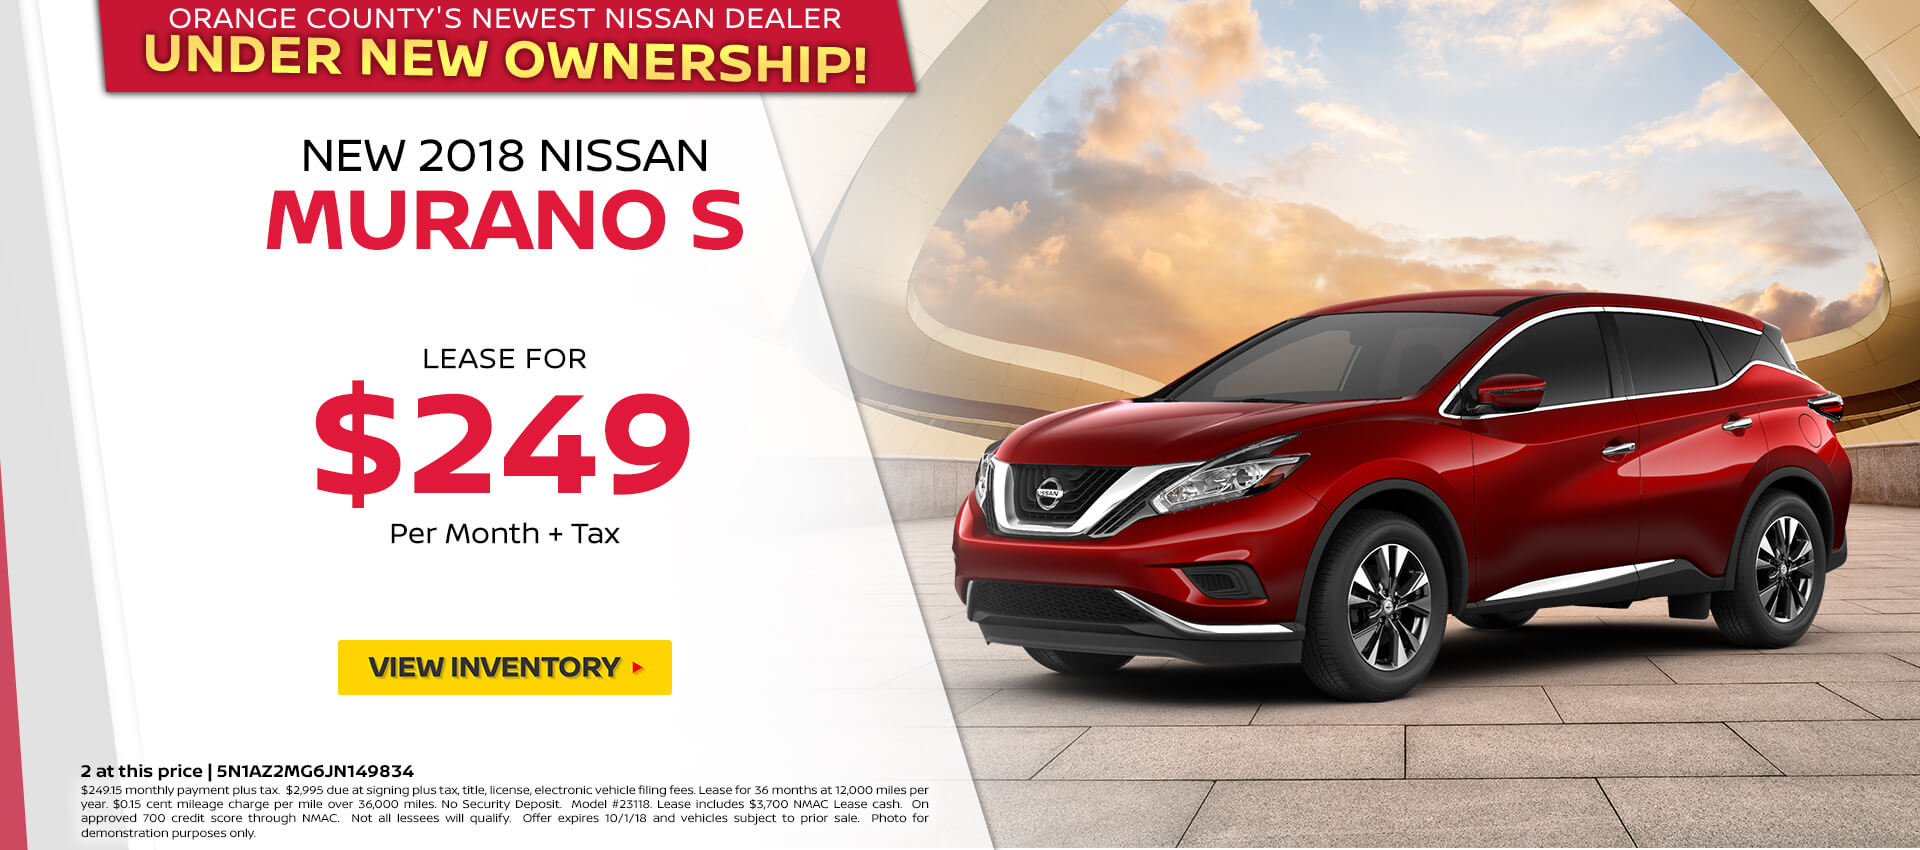 2018 Nissan Murano $249 Lease